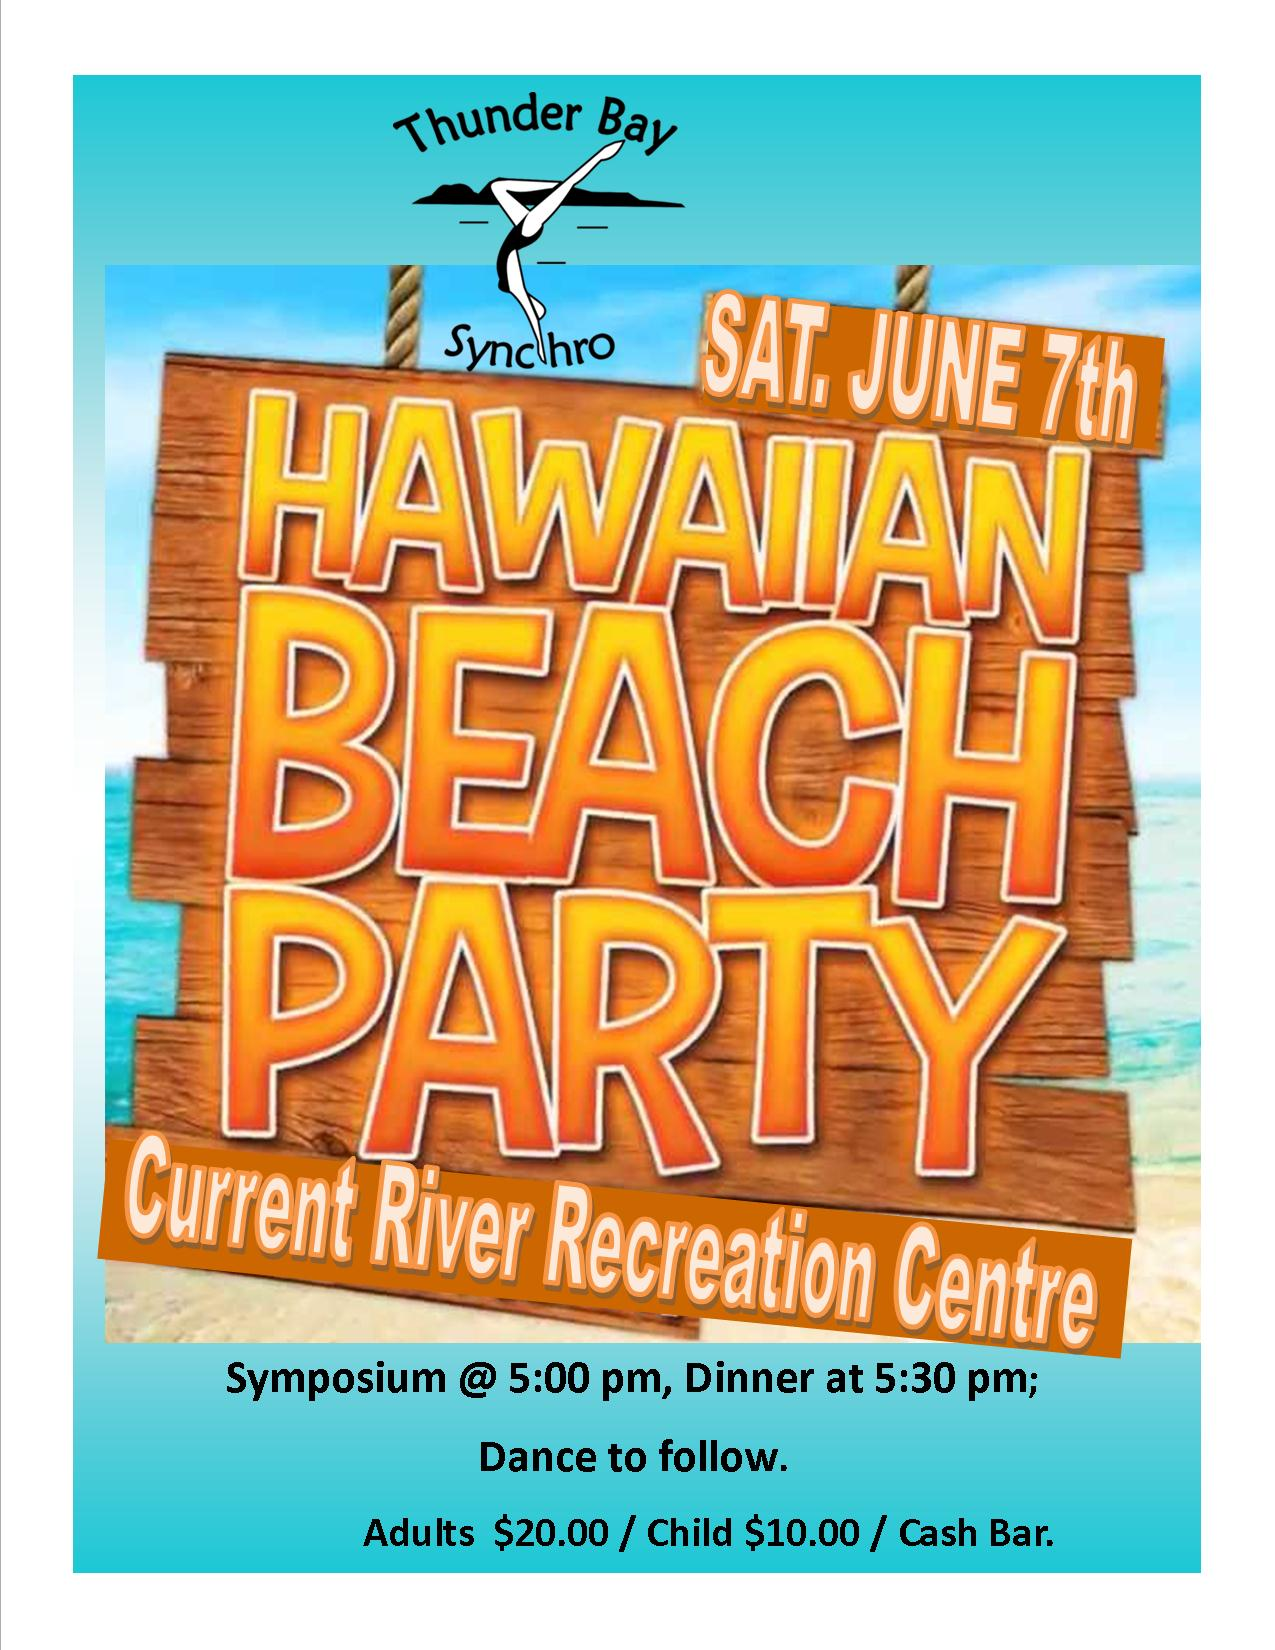 hawaiian beach party banquet invite 2014